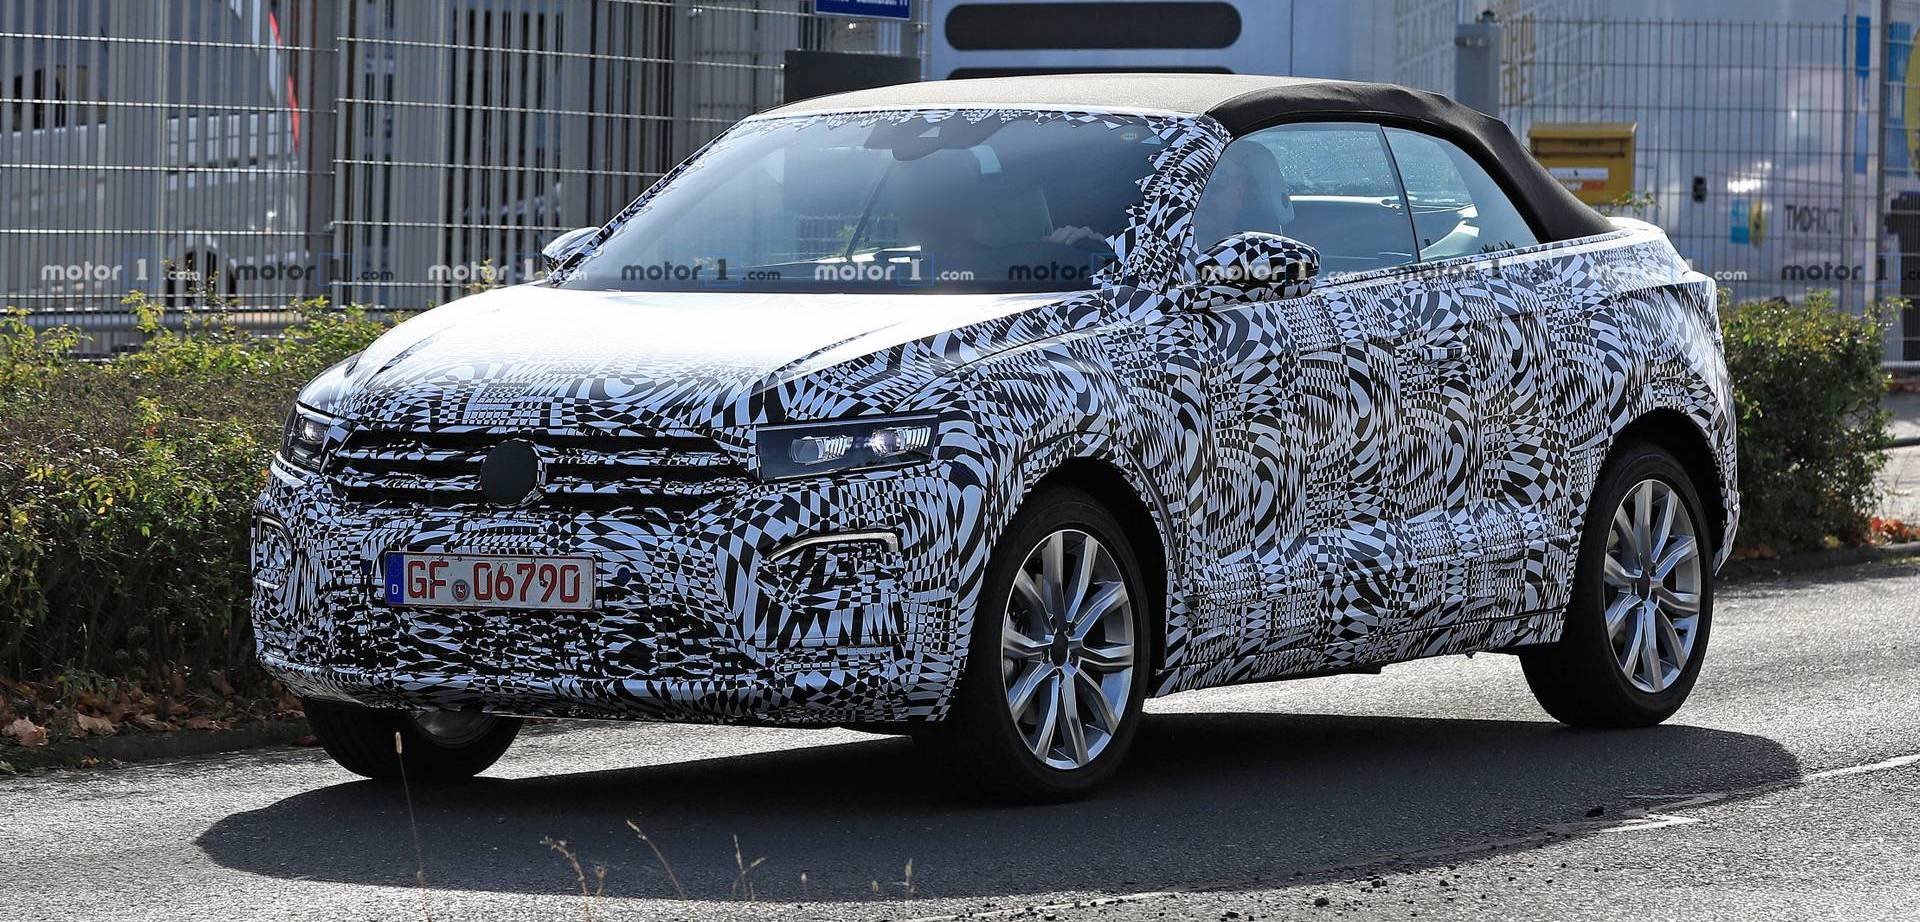 2020 VW T-Roc Convertible Spied For The First Time